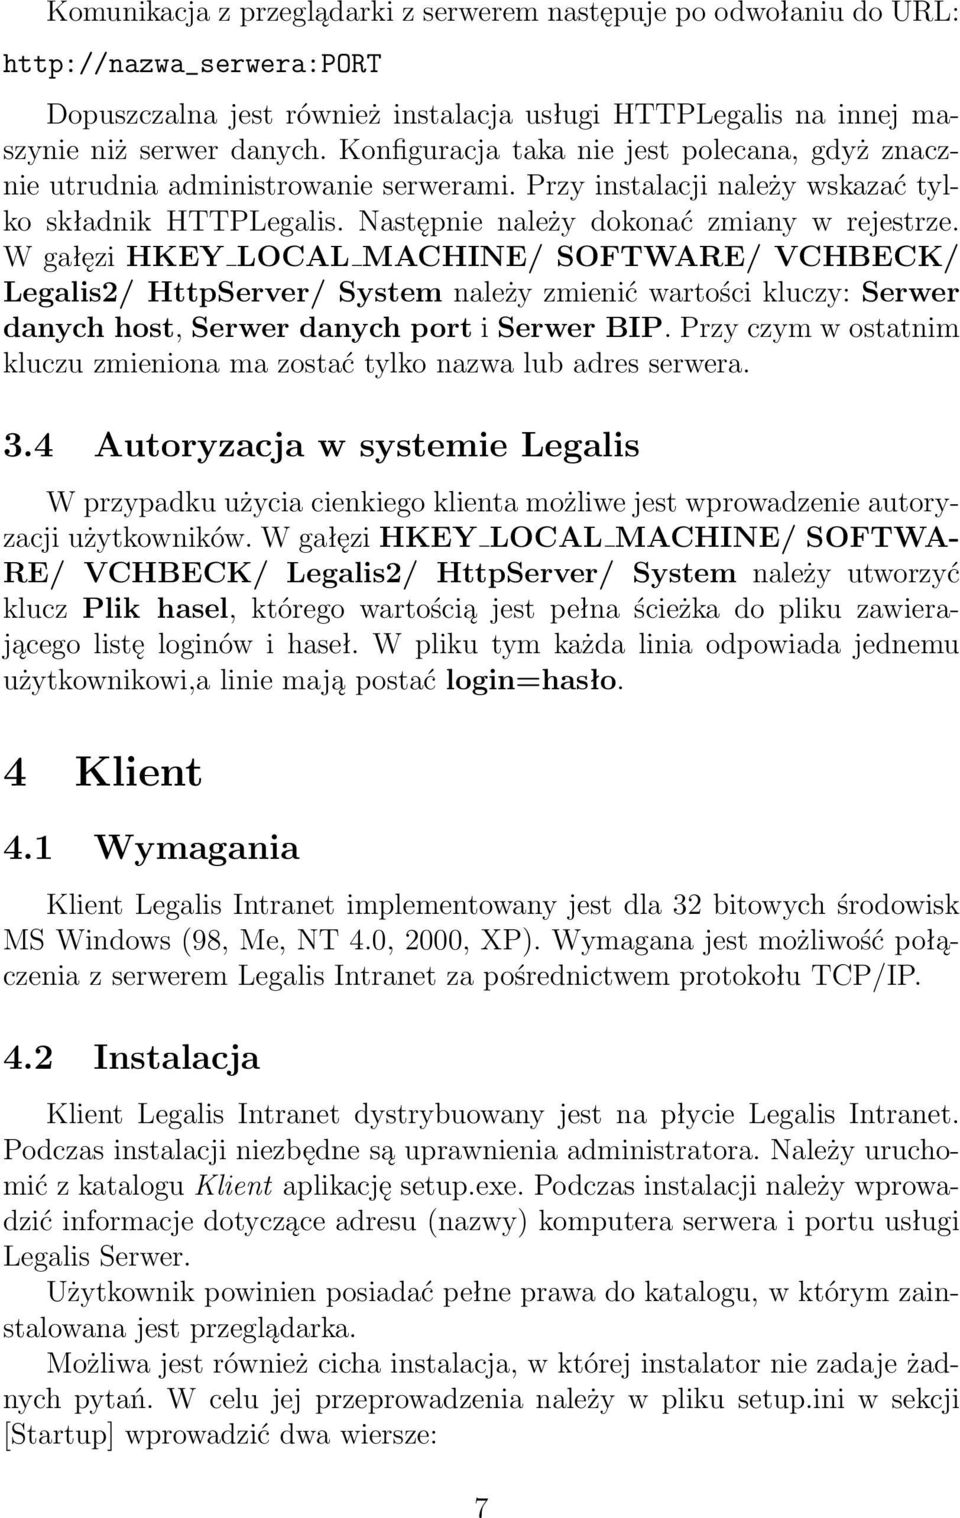 W gałęzi HKEY LOCAL MACHINE/ SOFTWARE/ VCHBECK/ Legalis2/ HttpServer/ System należy zmienić wartości kluczy: Serwer danych host, Serwer danych port i Serwer BIP.